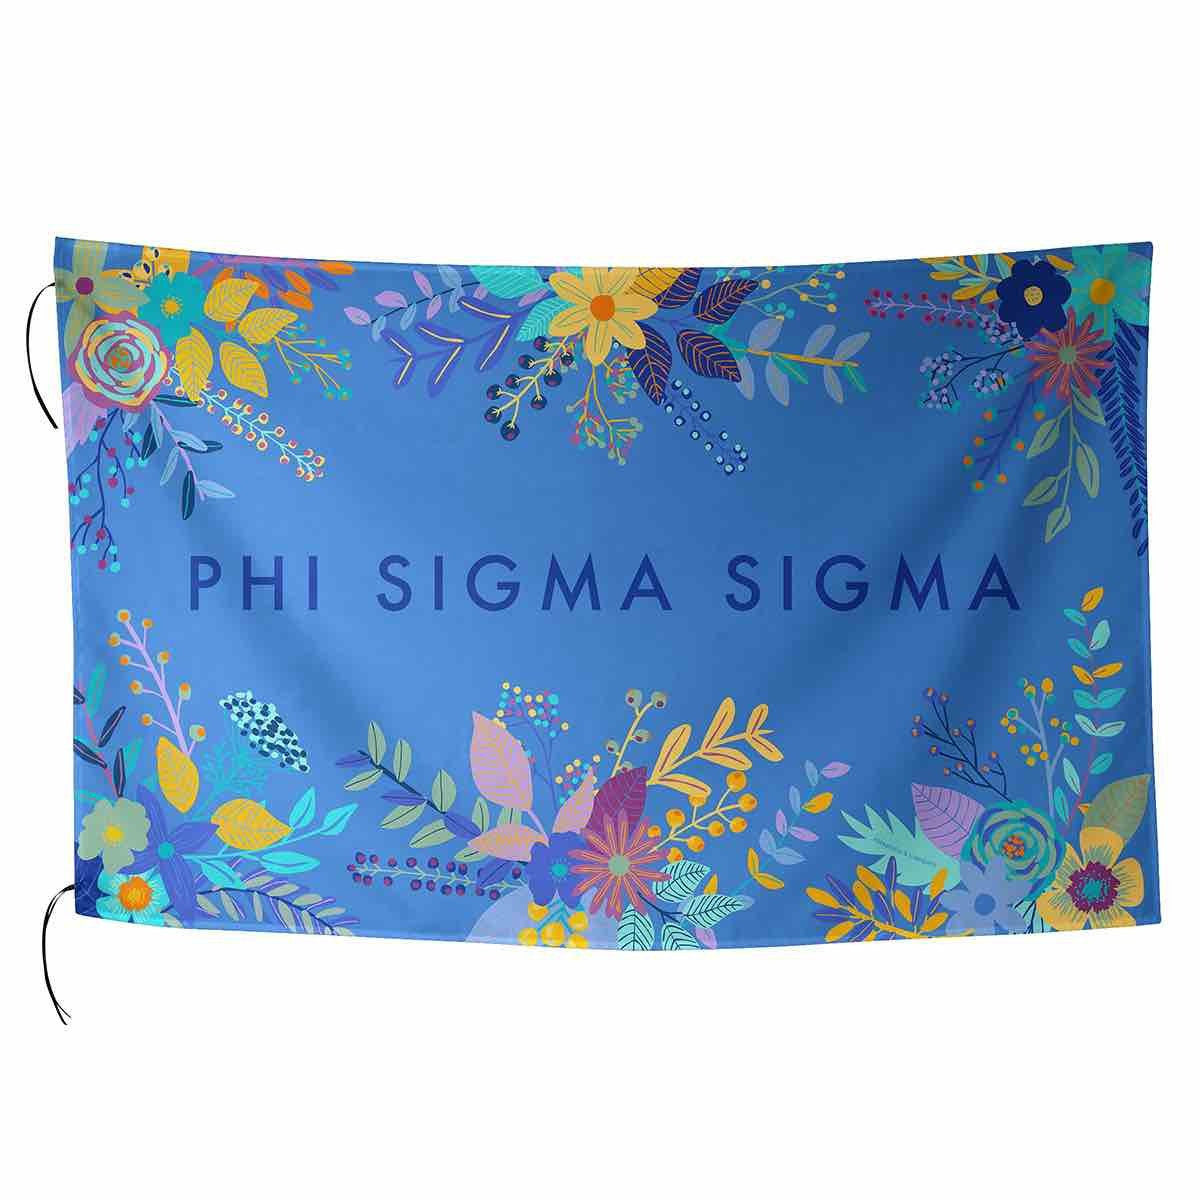 Phi Sigma Sigma Flag in pretty pink with tropical palm leaves and sorority name in cursive.